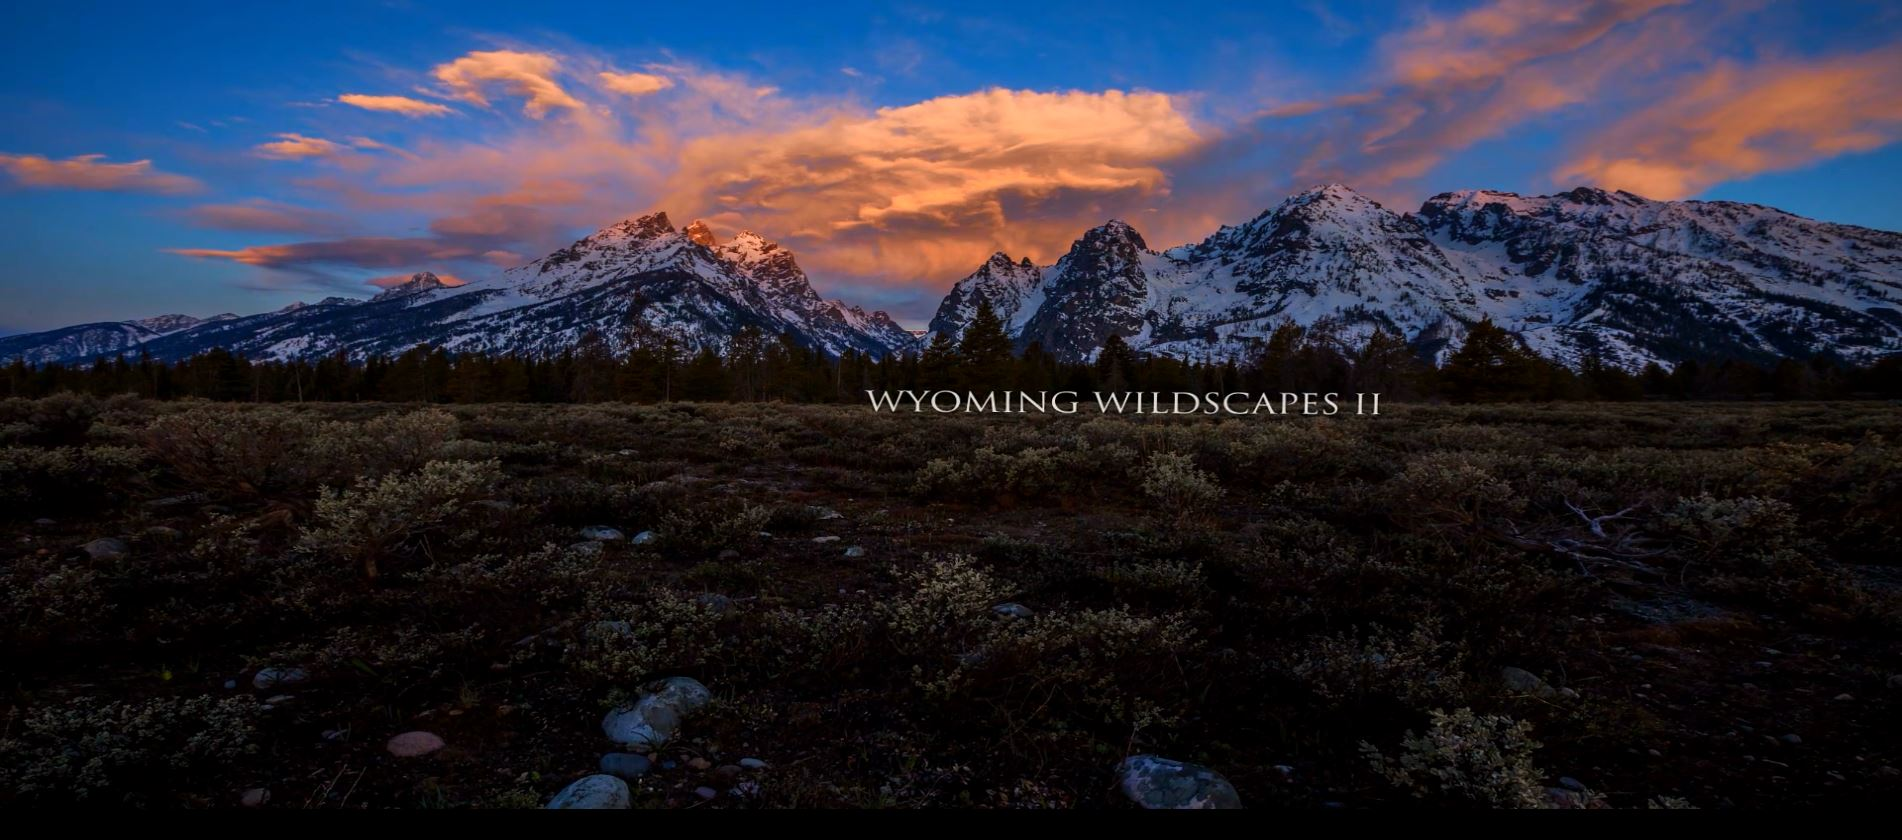 Wyoming Wildscapes a storm is coming 1 - Be There Before